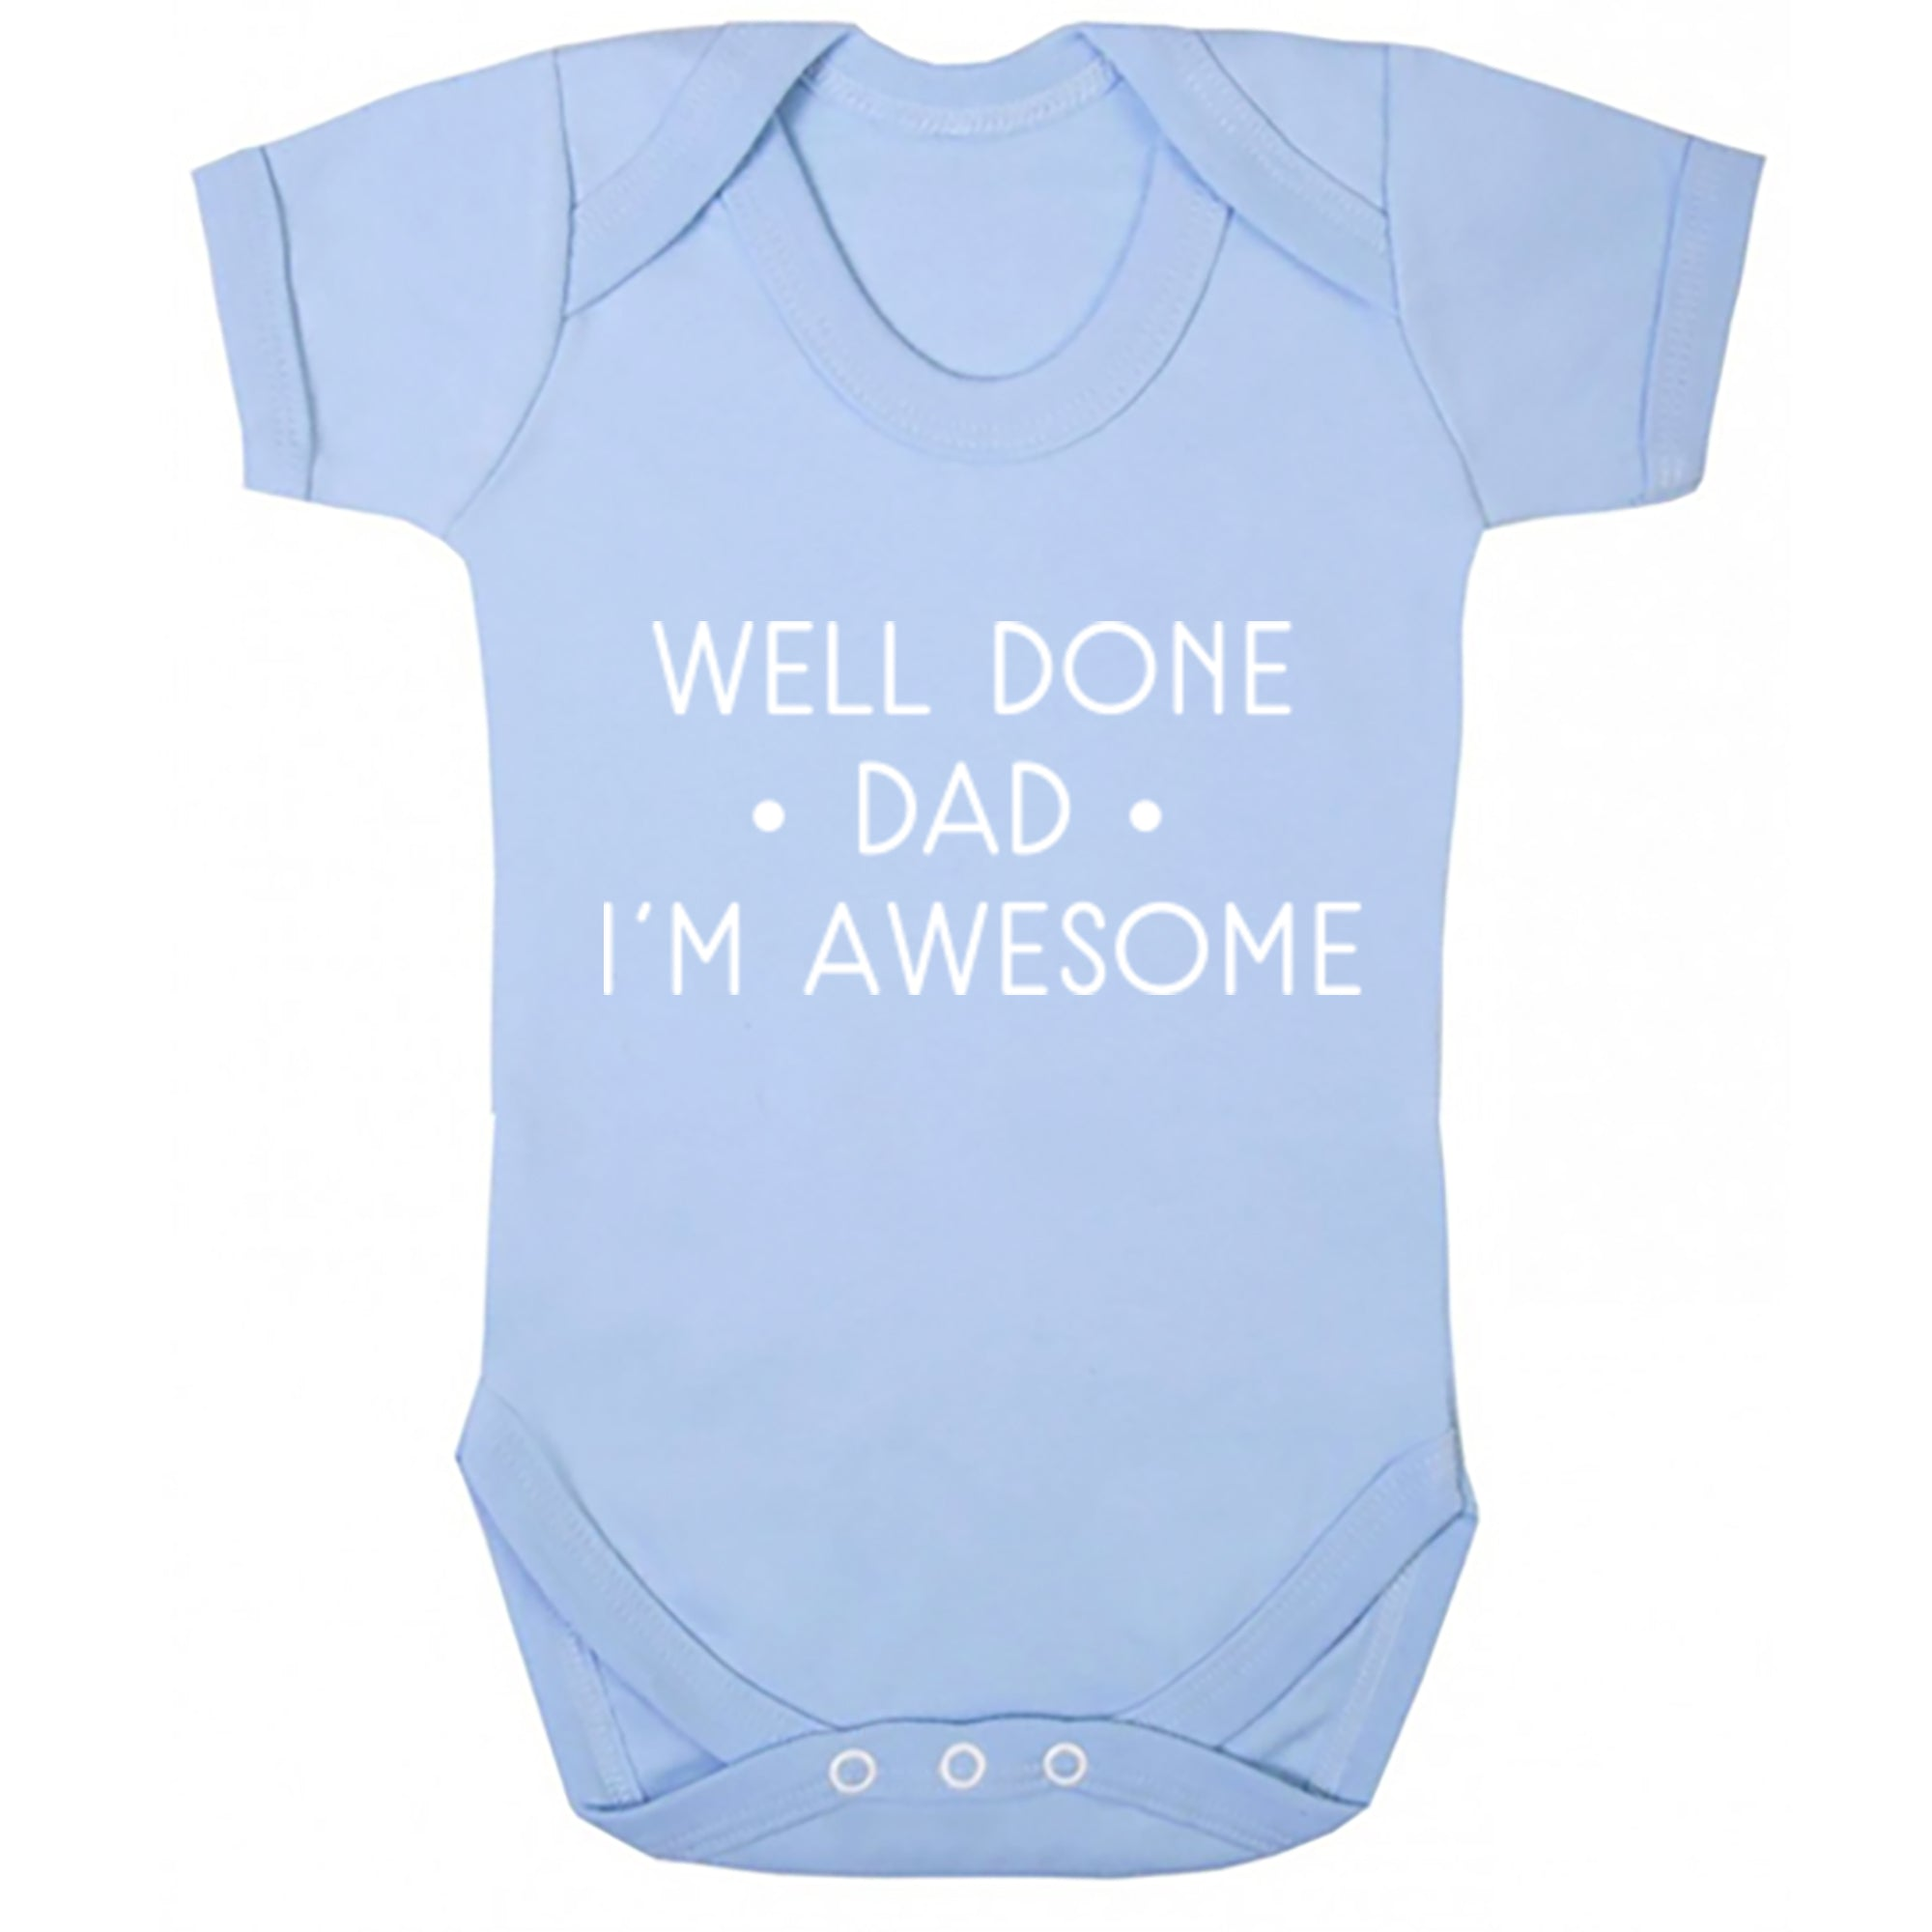 Well Done Dad I'm Awesome Baby Vest S0726